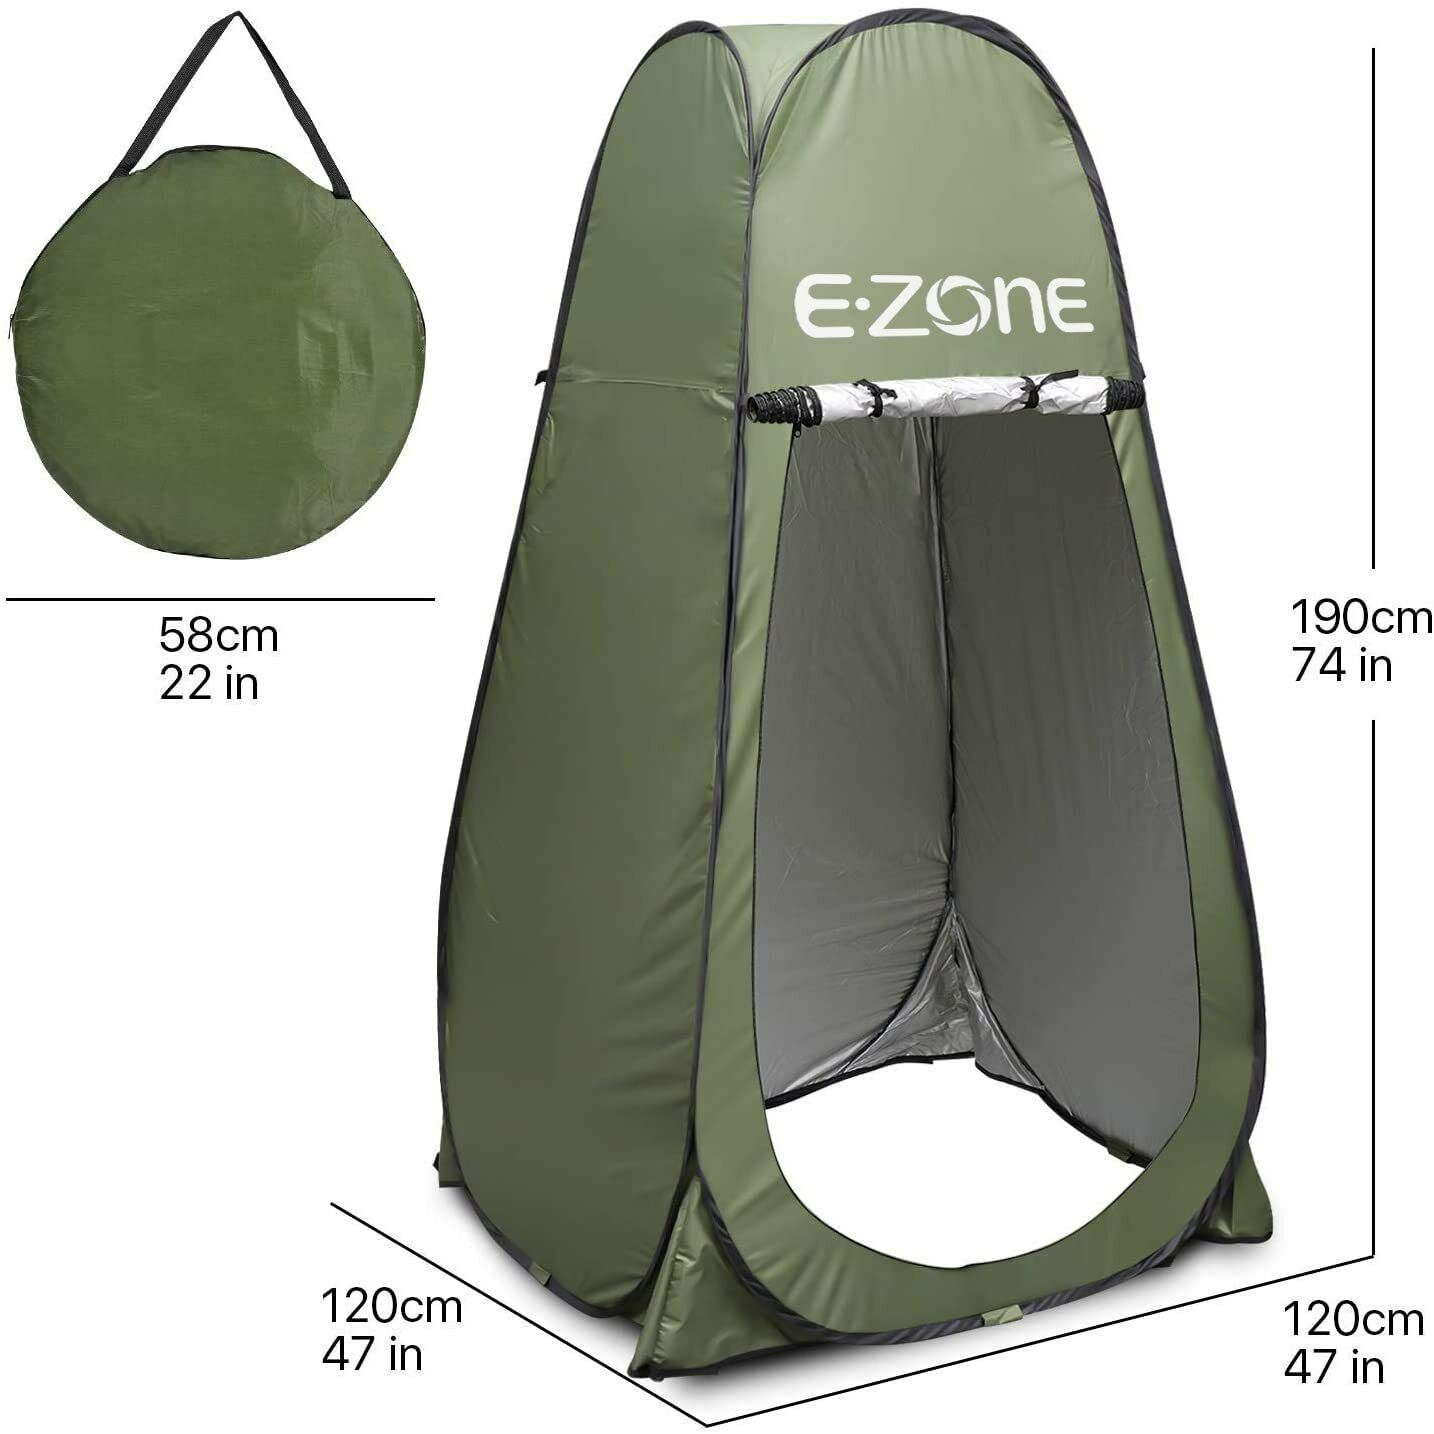 Portable Camping Shower Tent Foldable Changing Room Privacy Toilet Bath Shelter Camping & Hiking